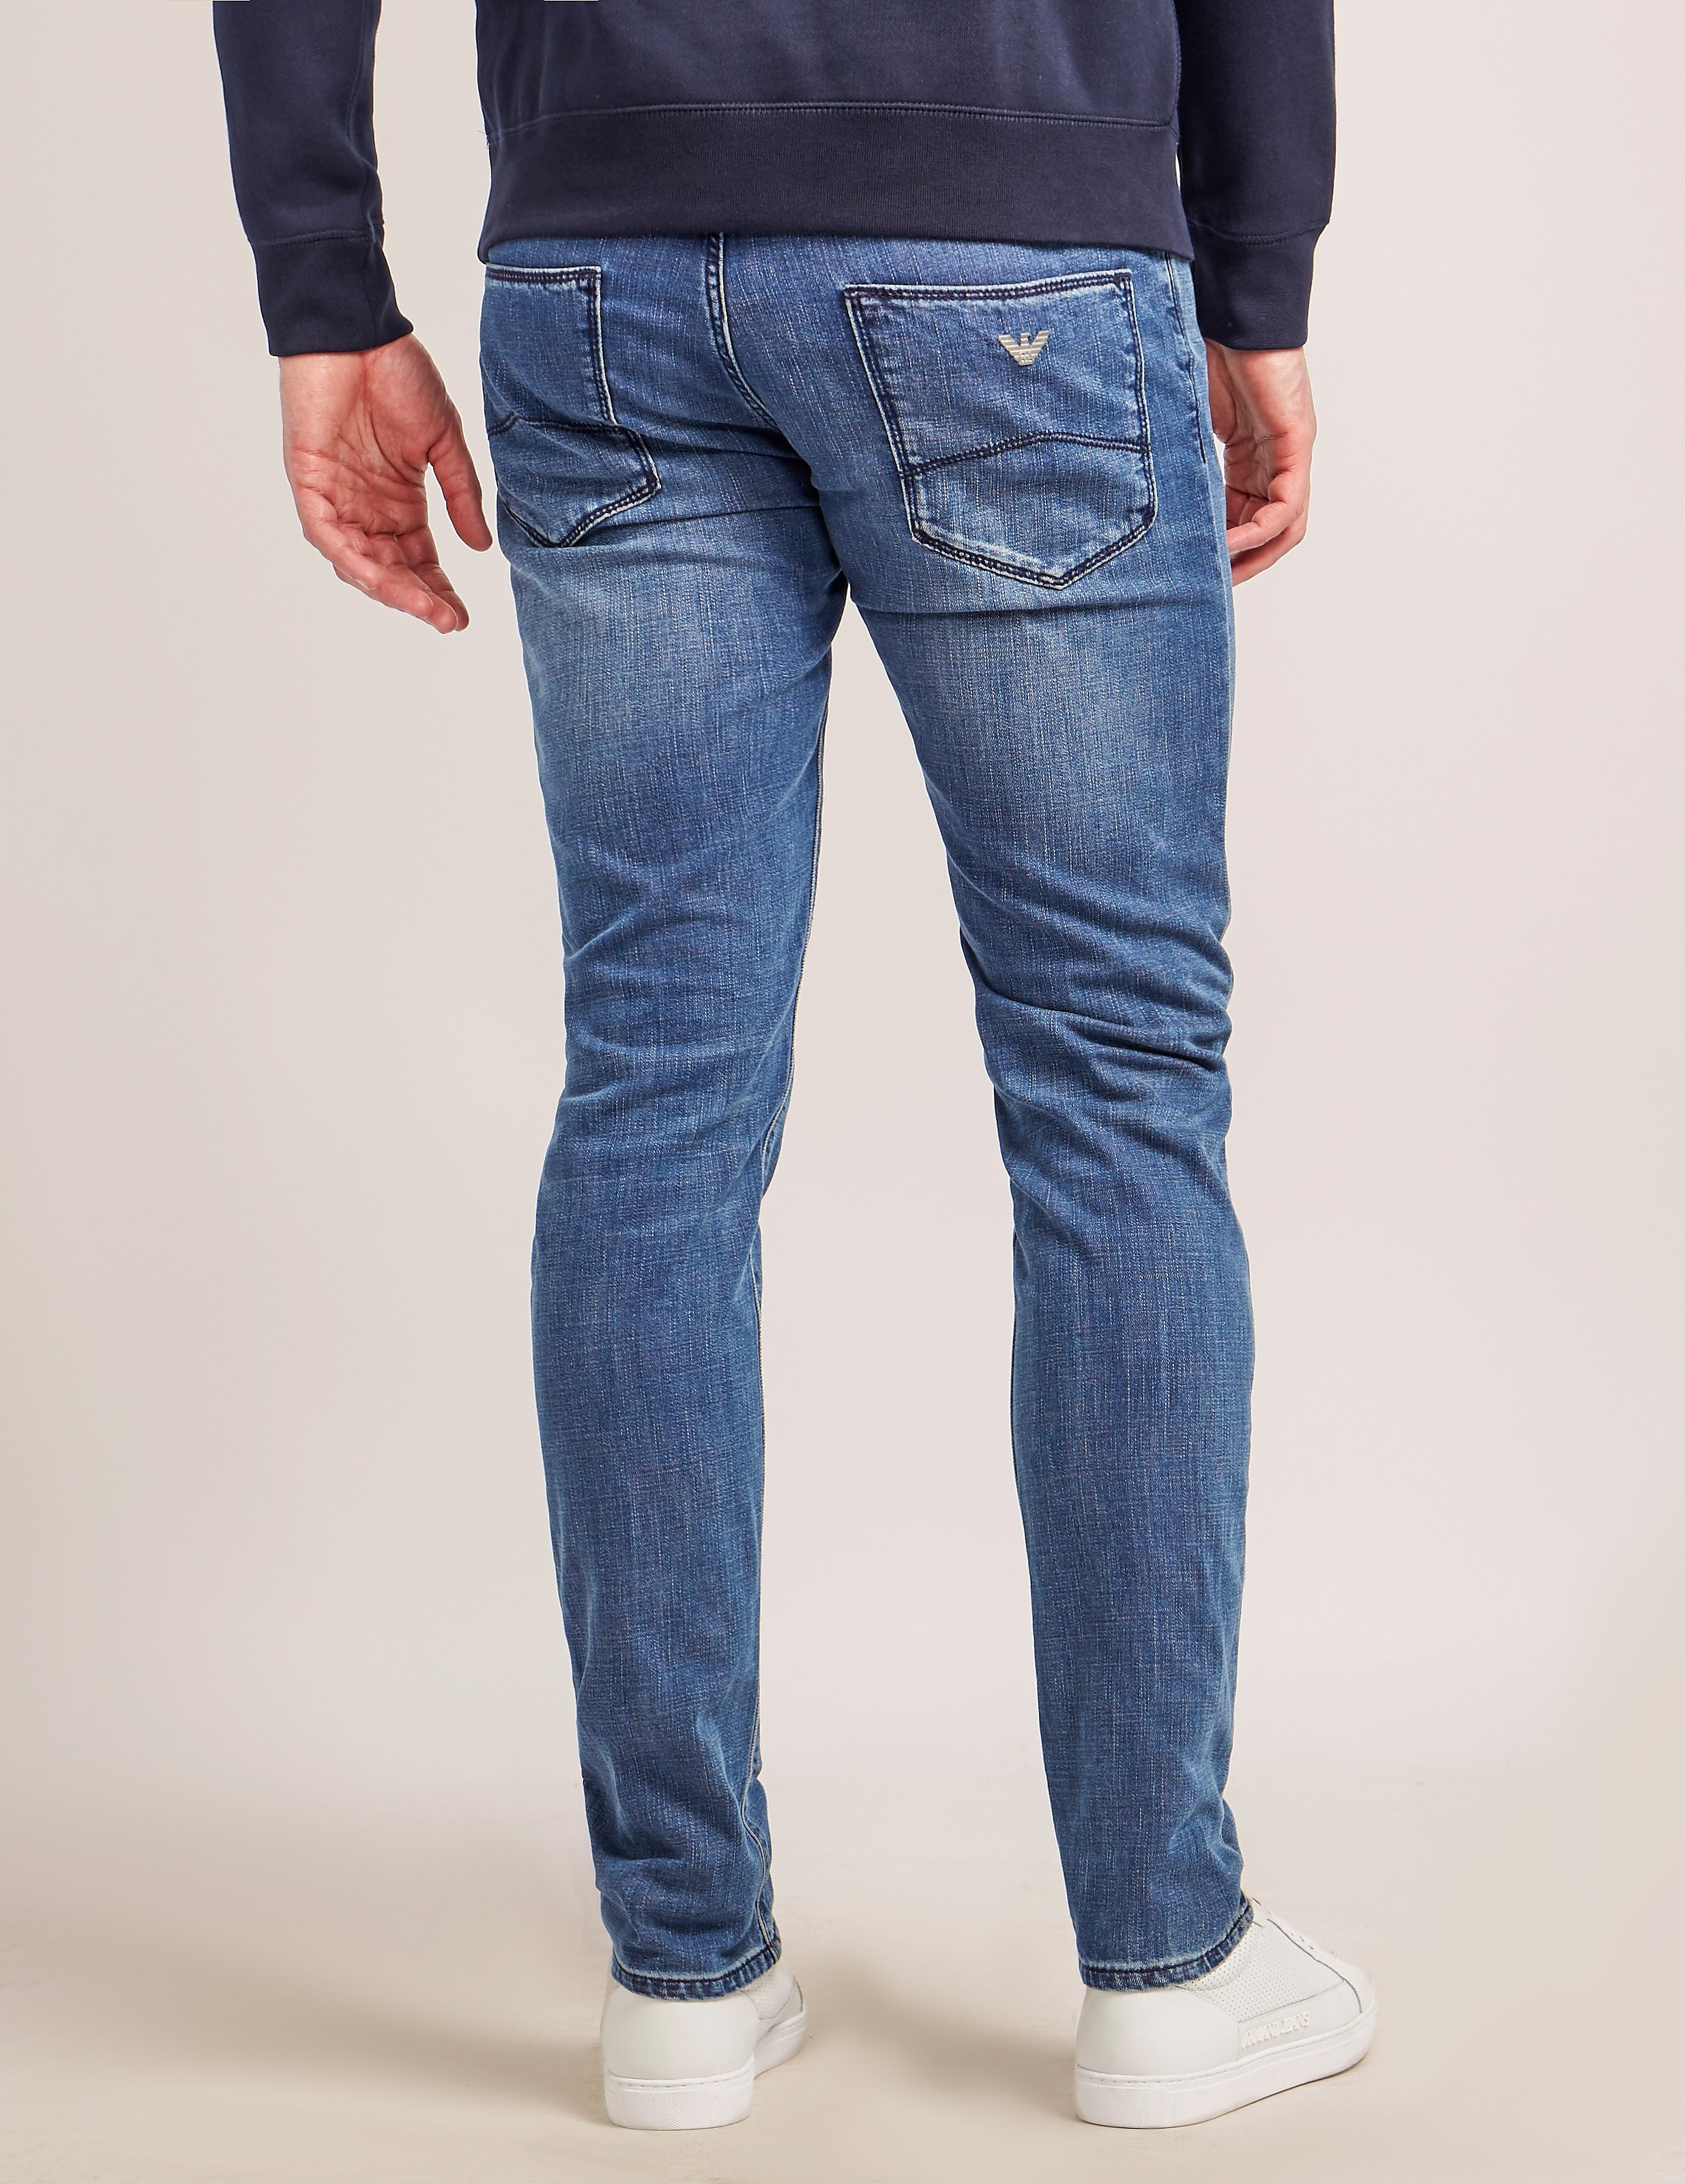 Armani Jeans J06 Slim Fit Jeans - Long